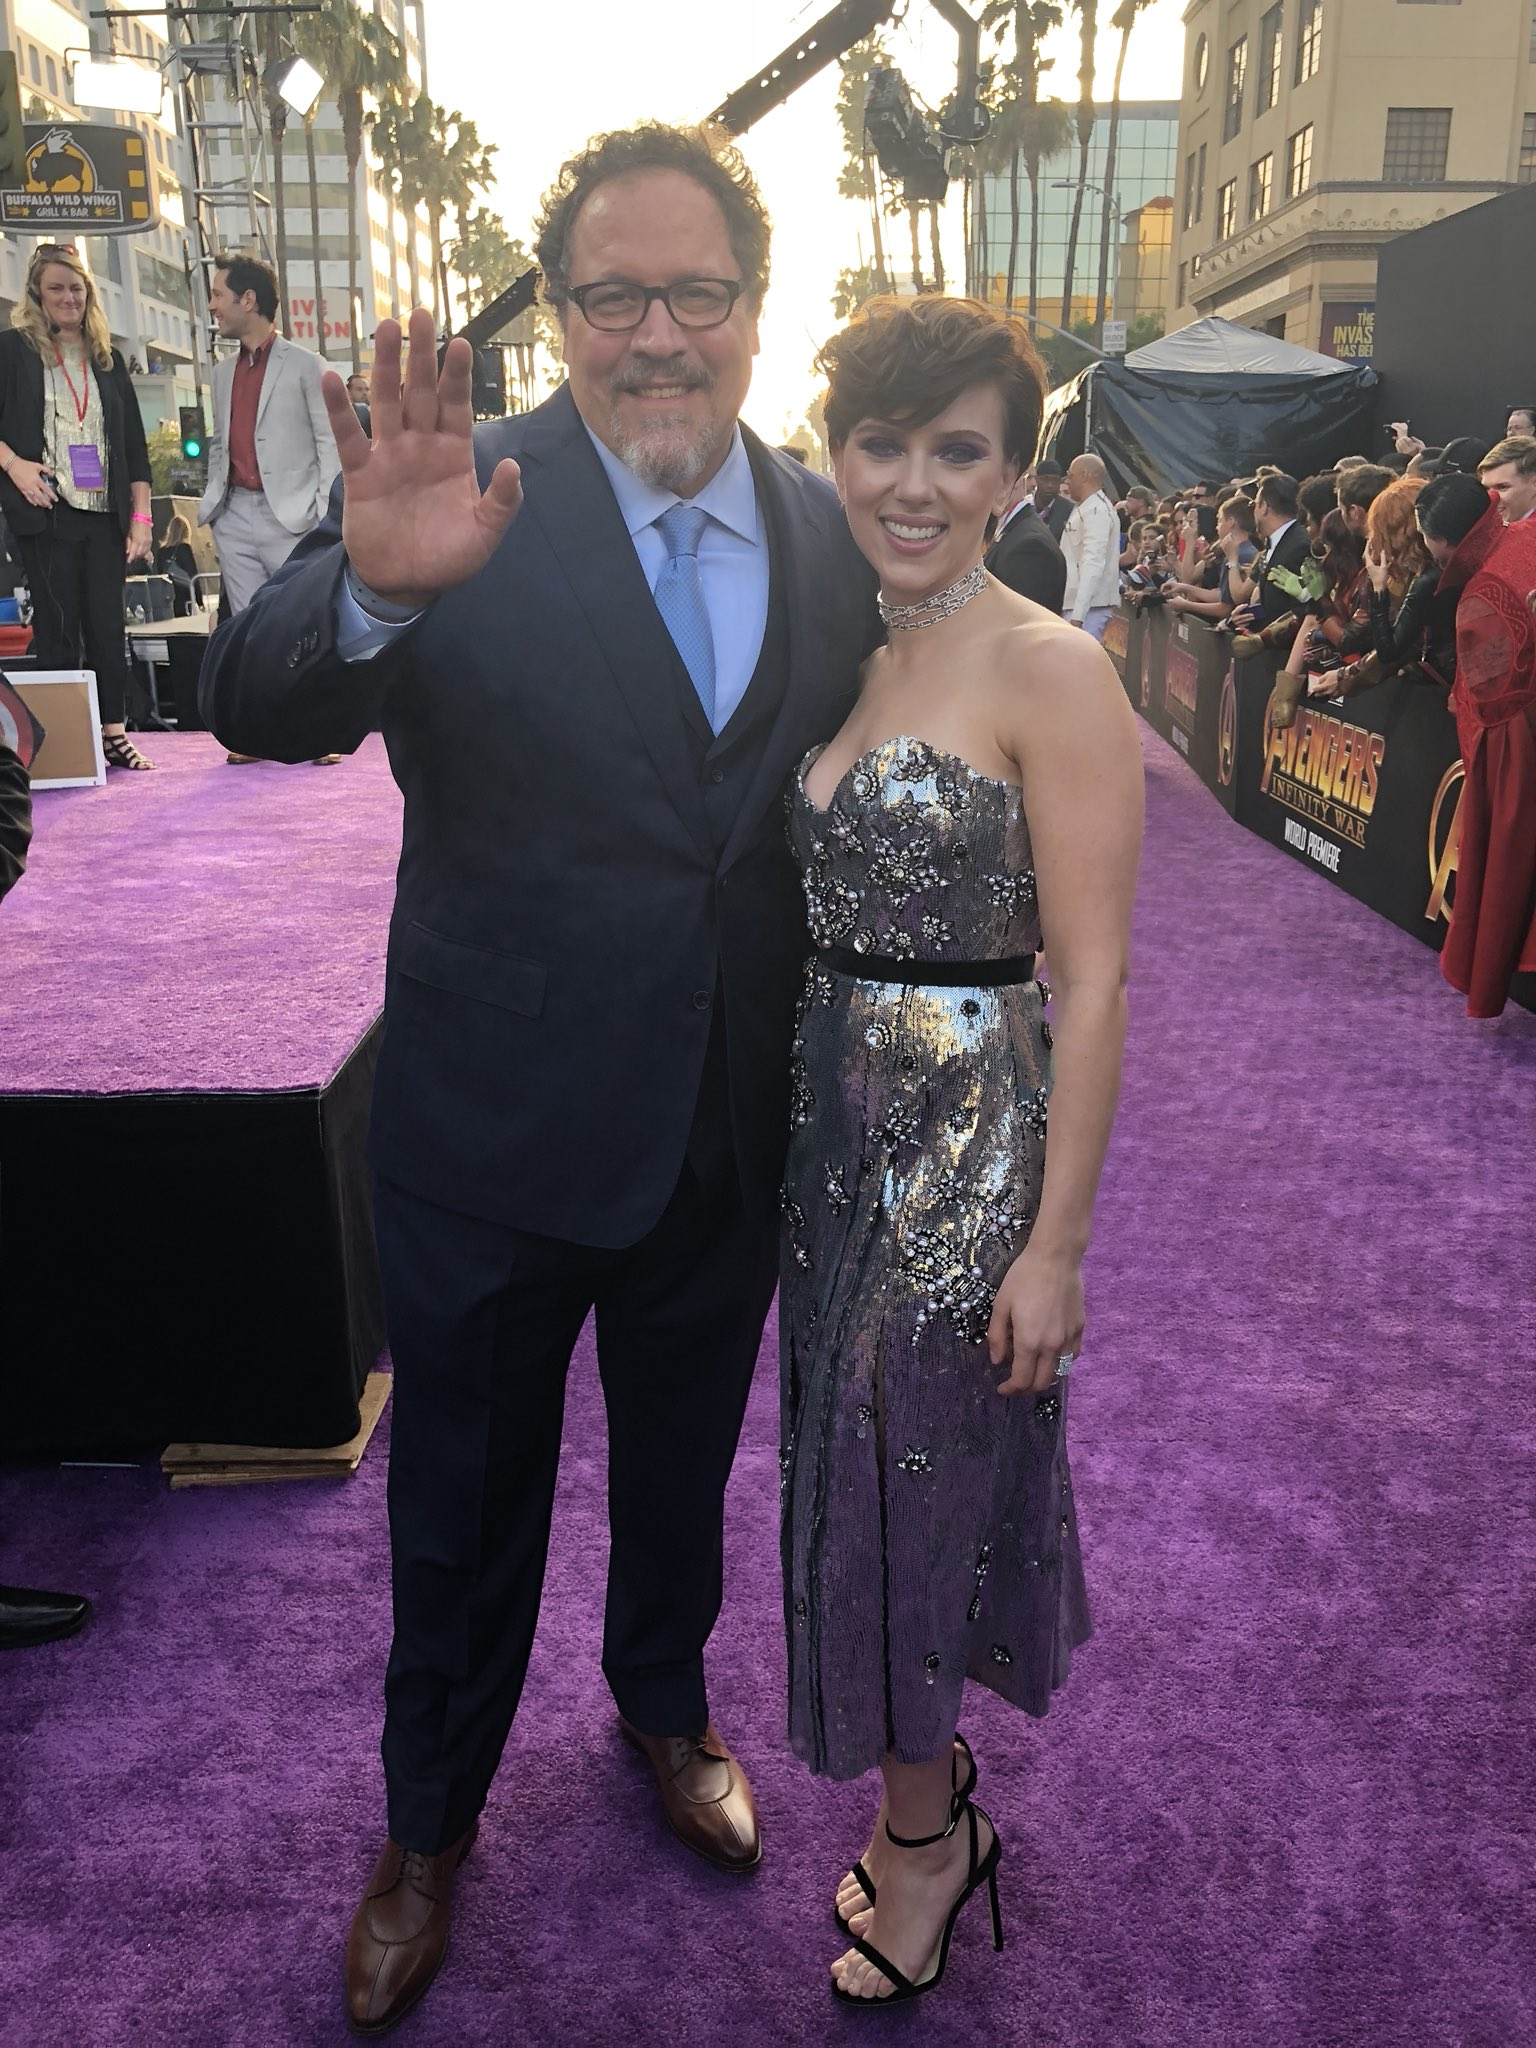 .@Jon_Favreau and Scarlett Johansson shine on the red carpet. #InfinityWar https://t.co/LqTnlbNOz7